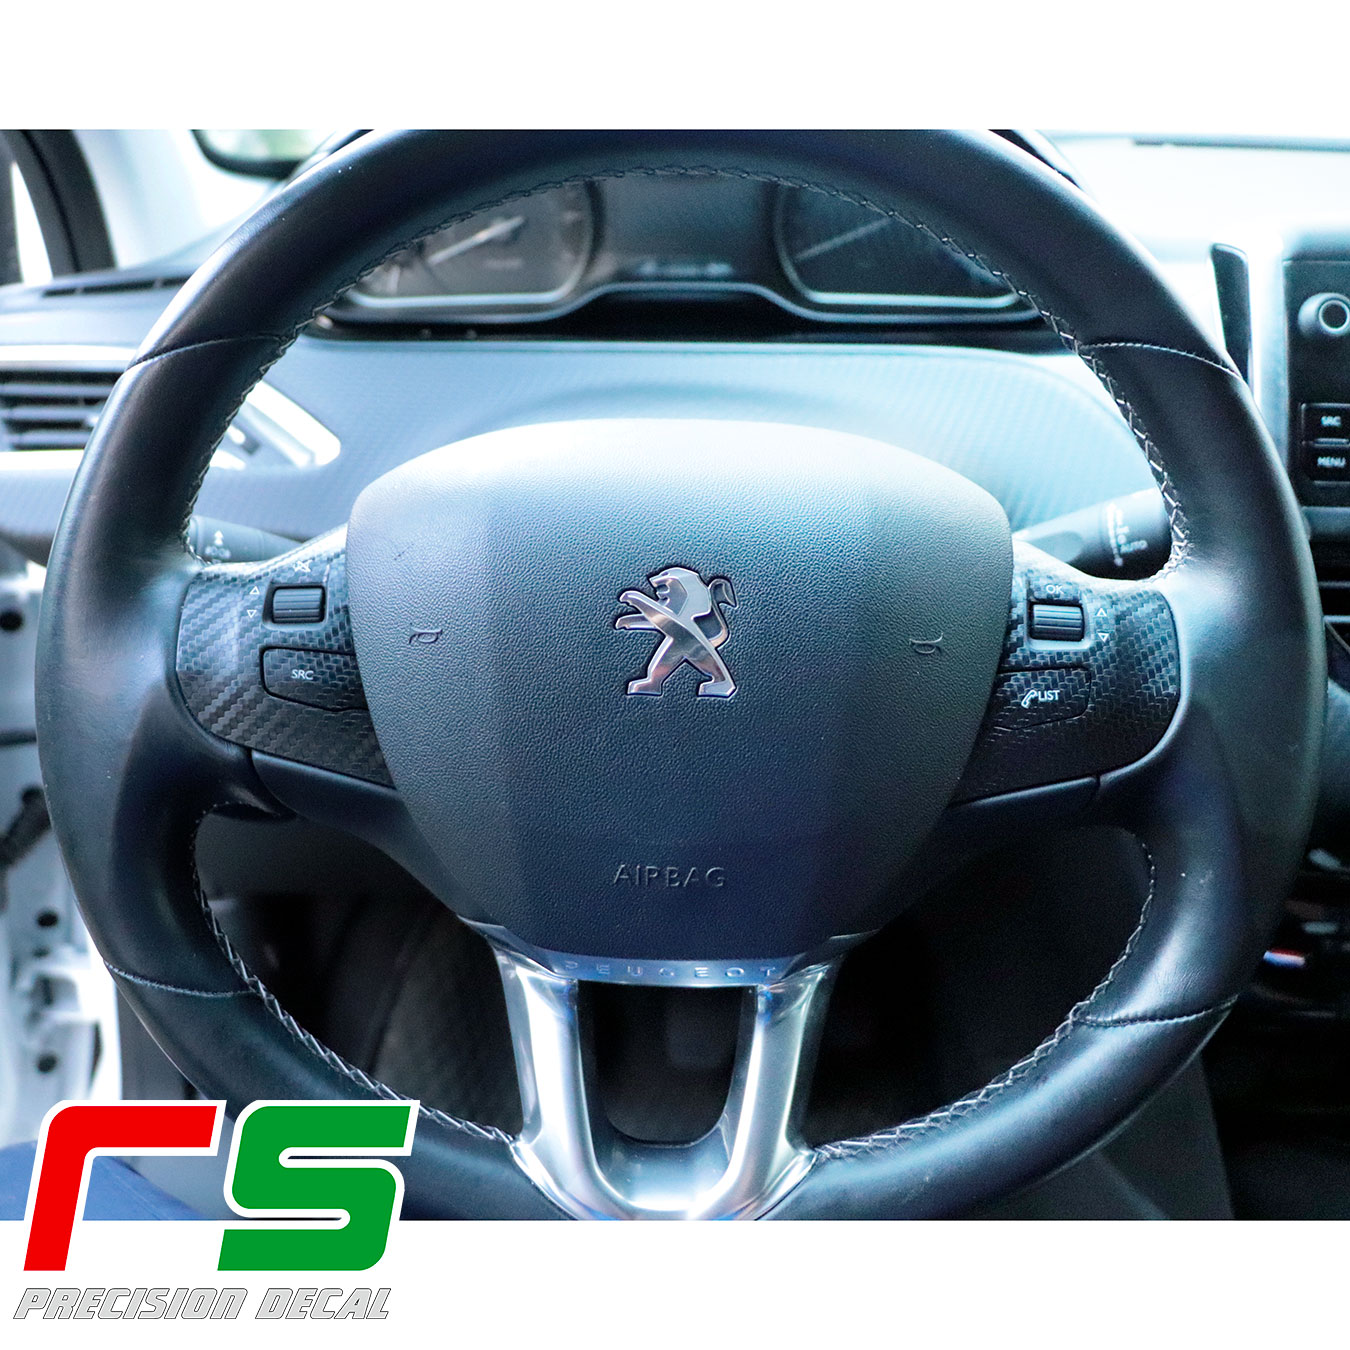 Autocollants Peugeot 208 sur le volant Decal tuning look carbone